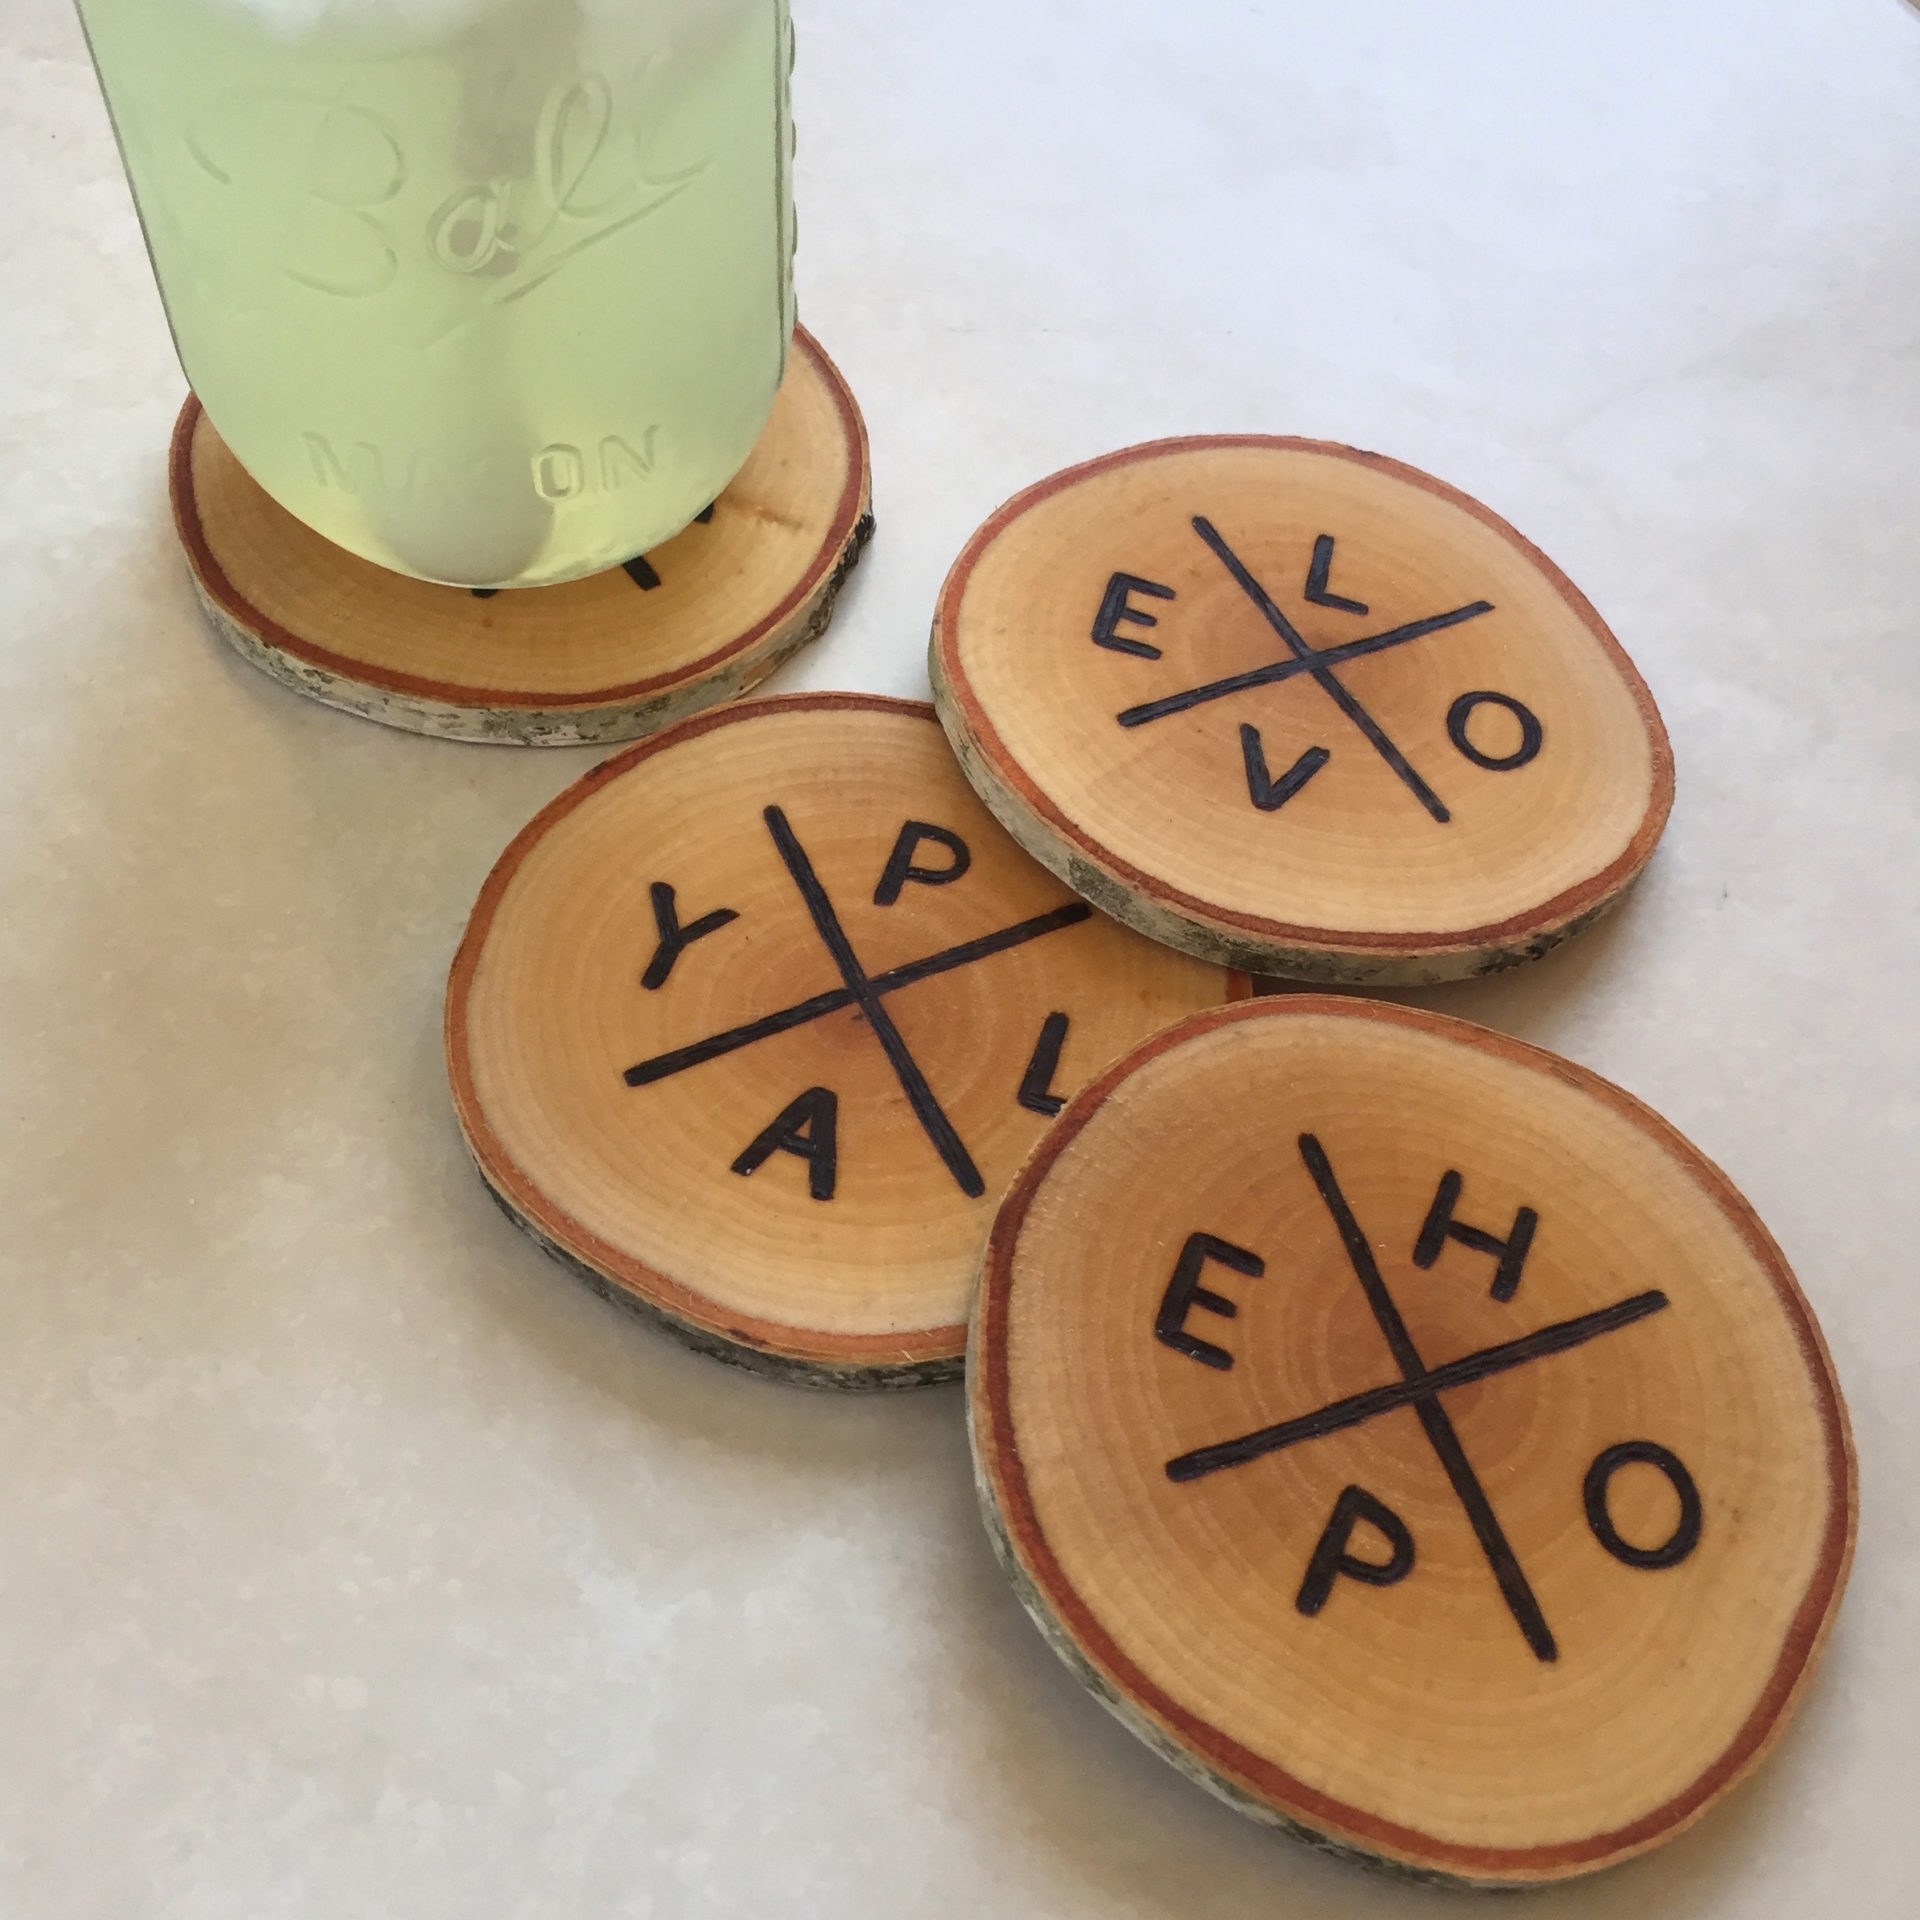 The Colibri Project 4 Letter Words Wood Burned Coasters The